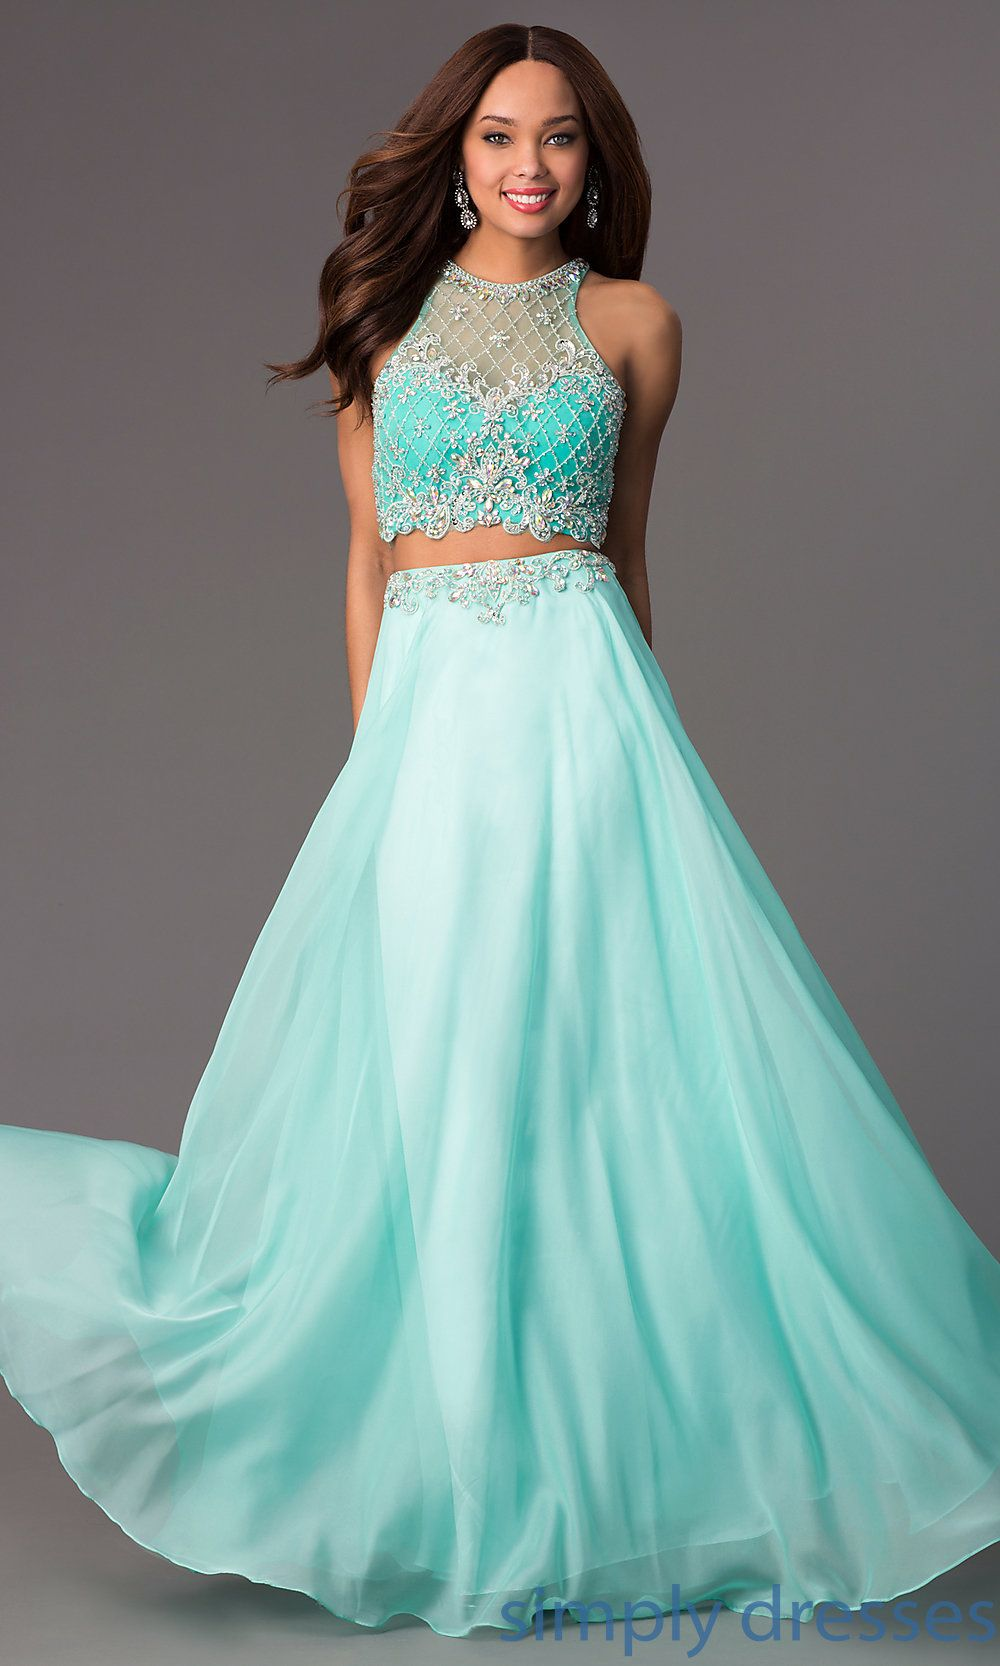 PO-7012 - Jeweled Illusion-Bodice Long Two-Piece Coral Dress ...